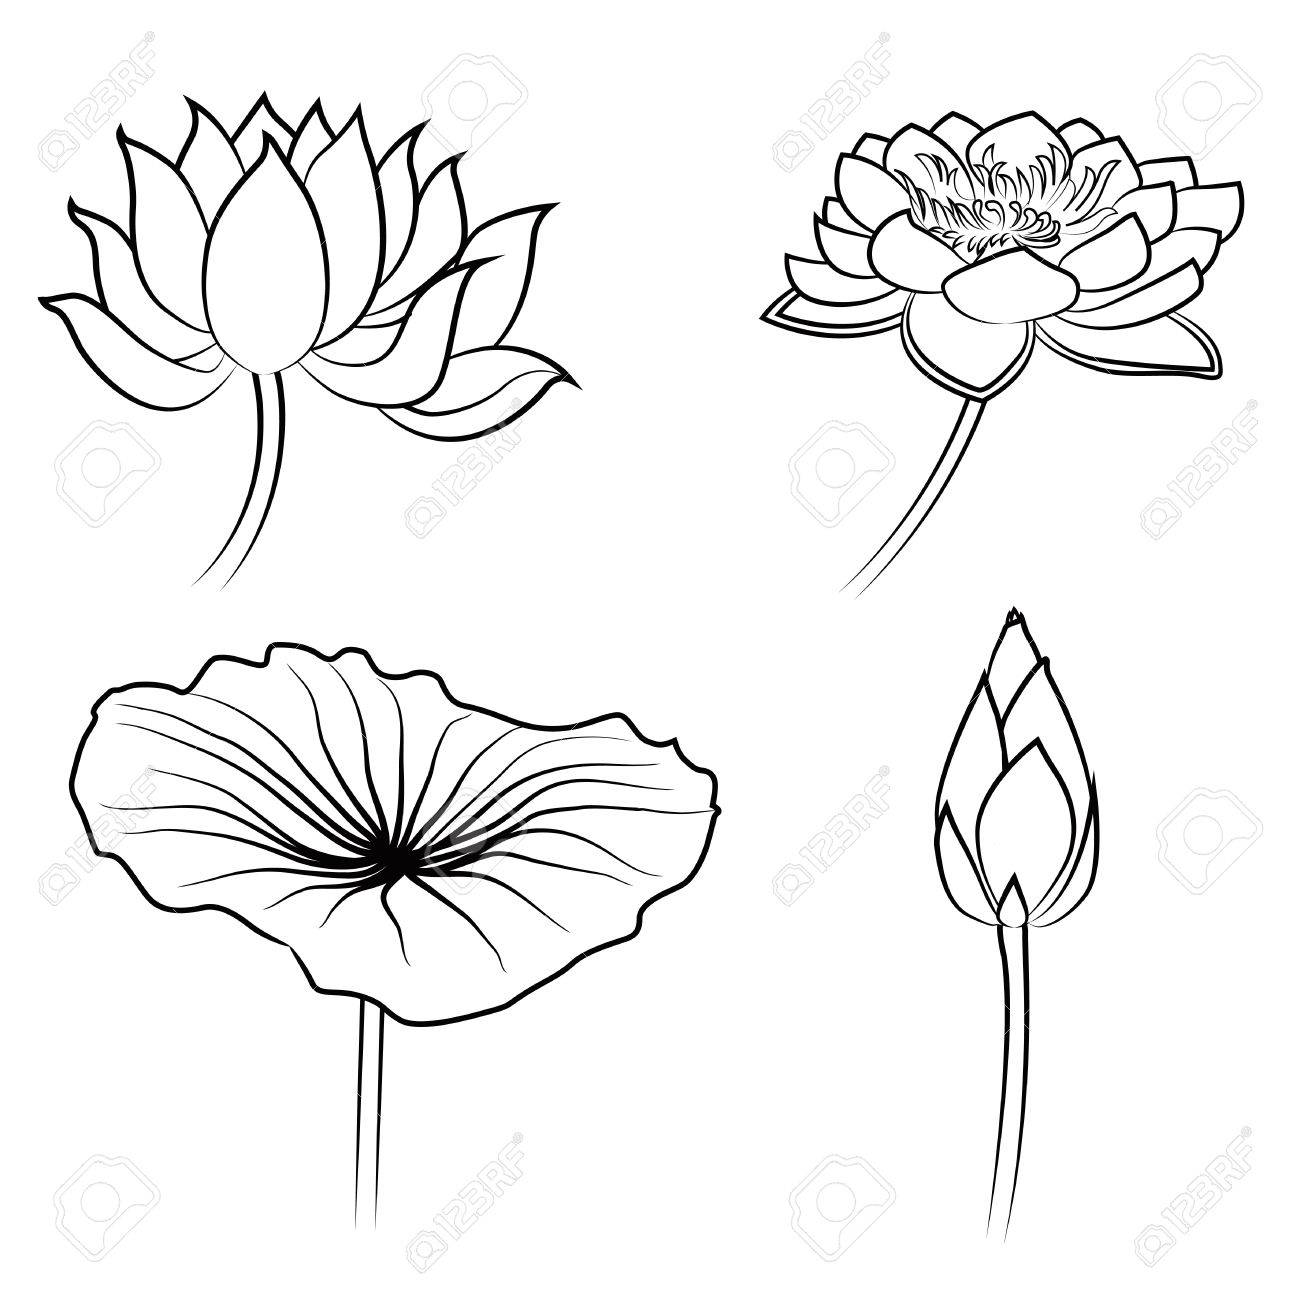 Floral water lily elements for design royalty free cliparts vectors floral water lily elements for design stock vector 29255566 izmirmasajfo